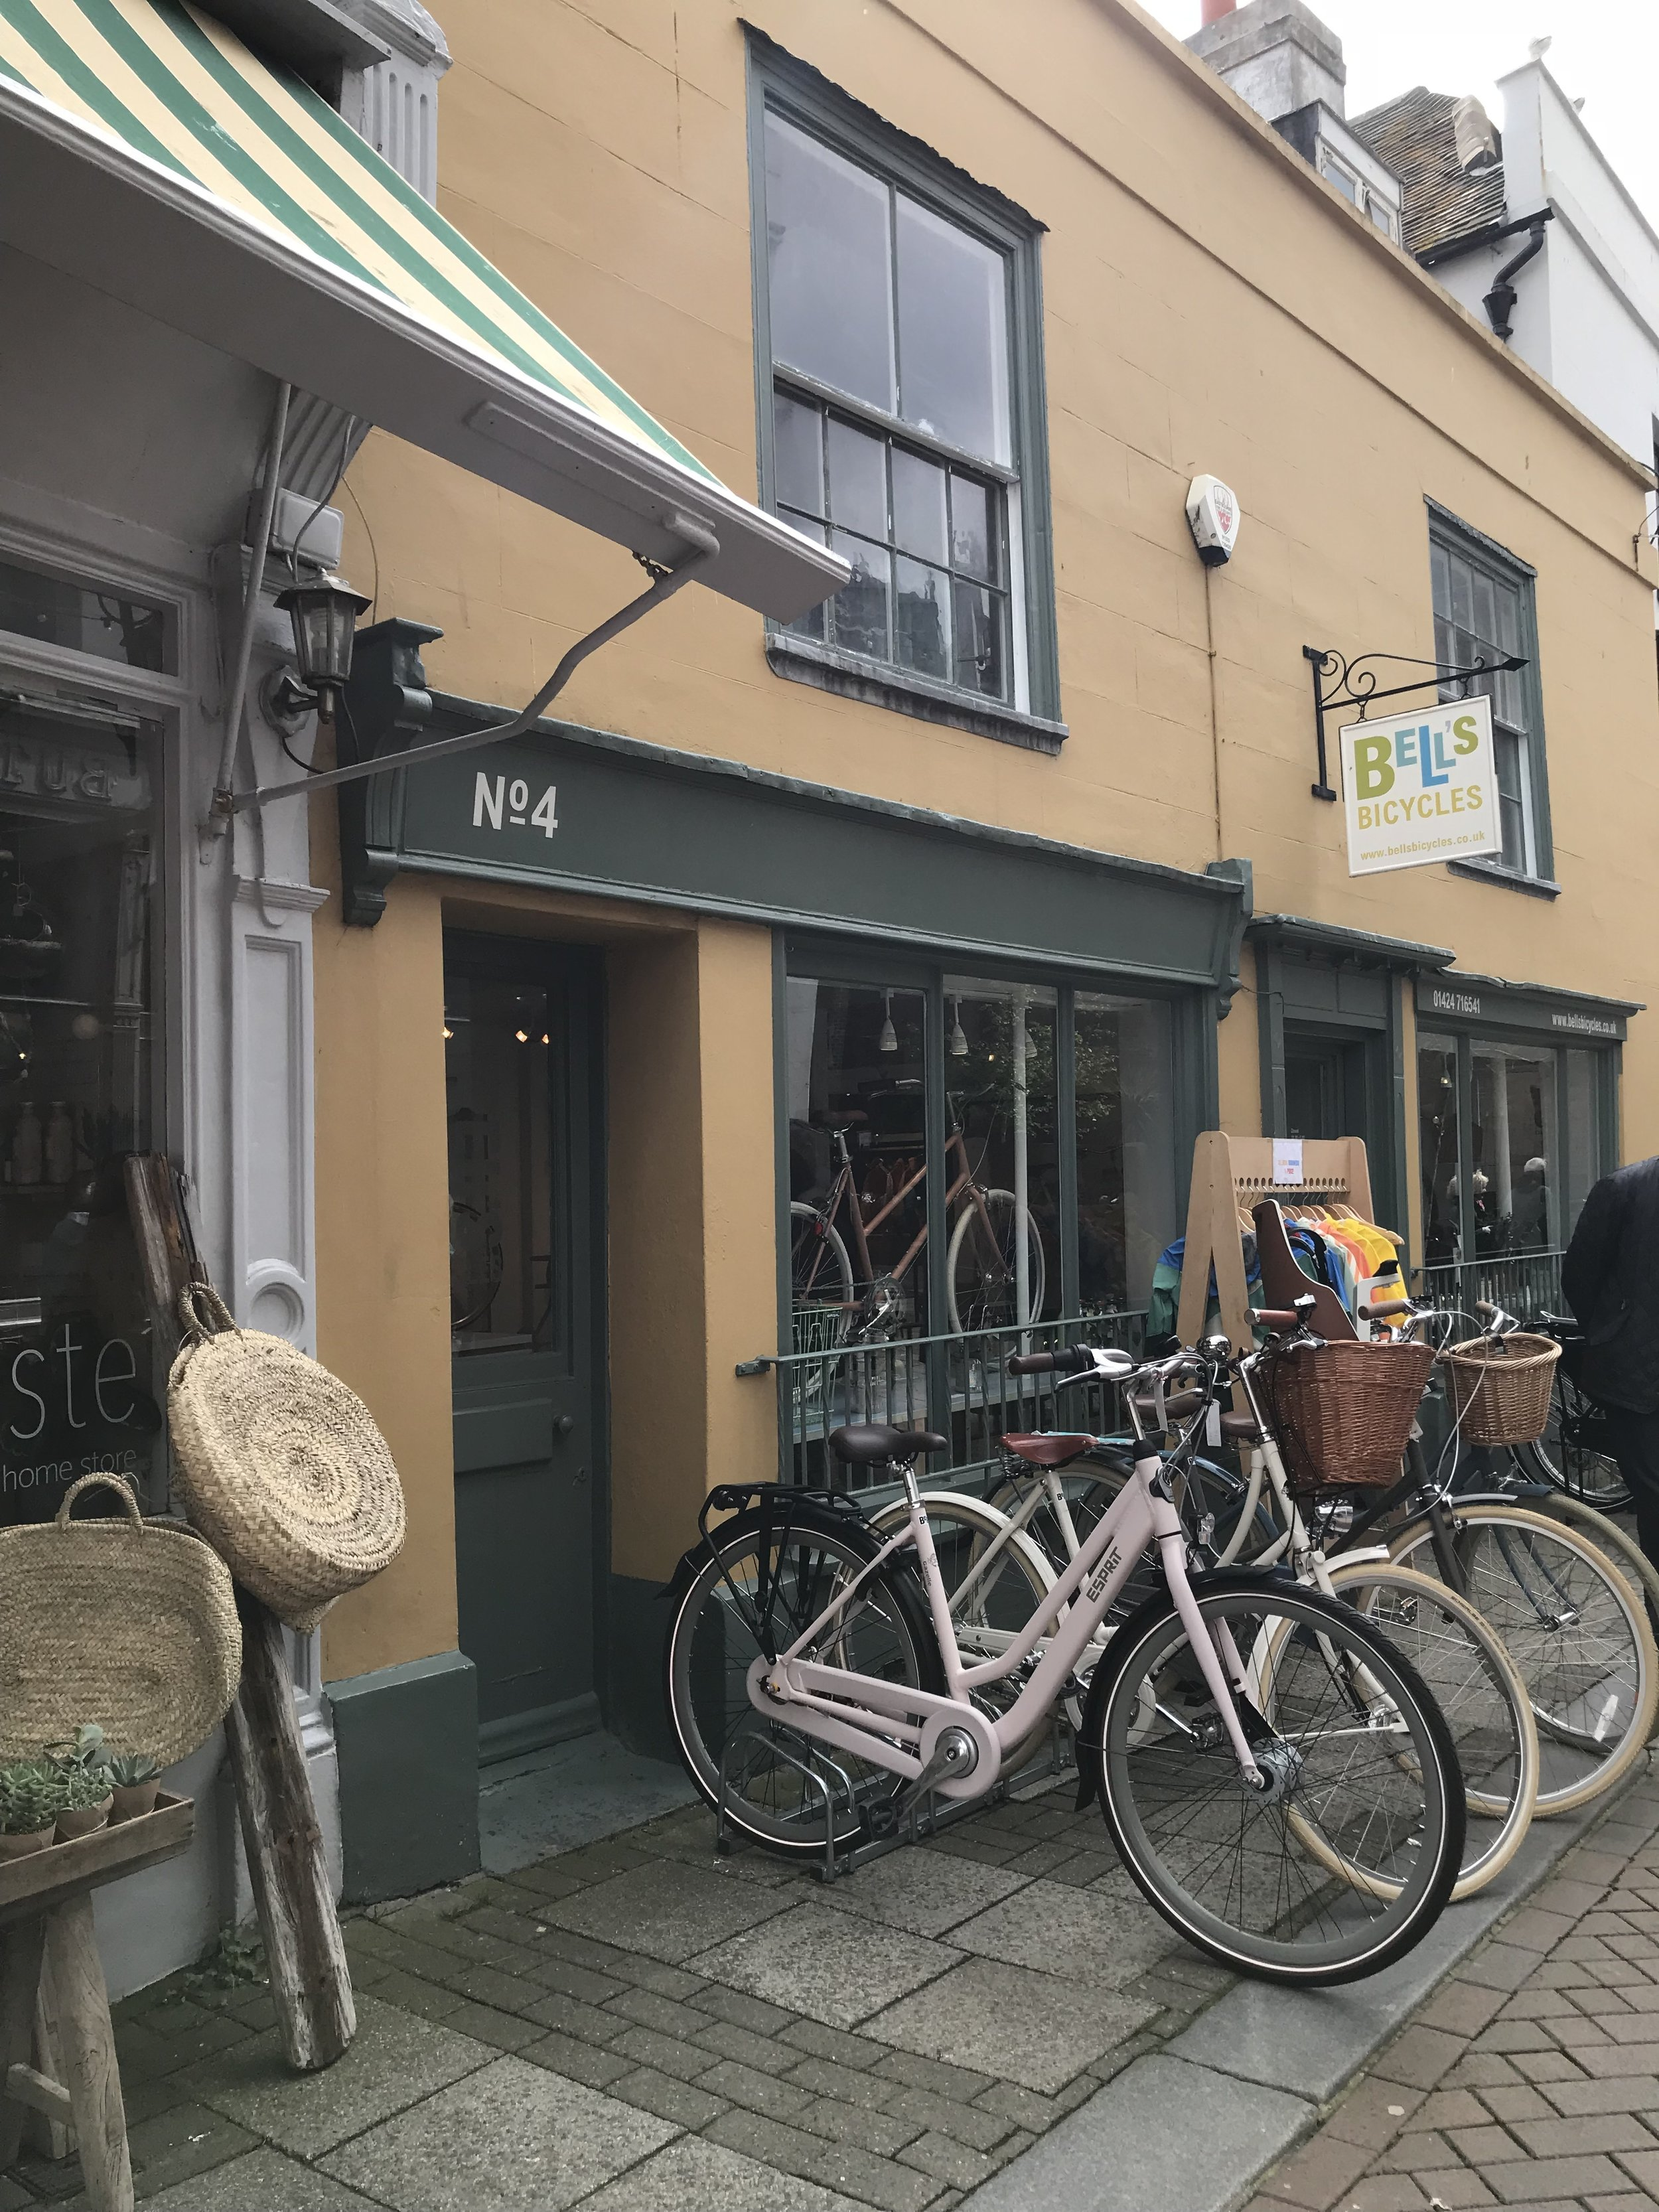 A quaint little cycle shop - but hang on! Look at those baskets